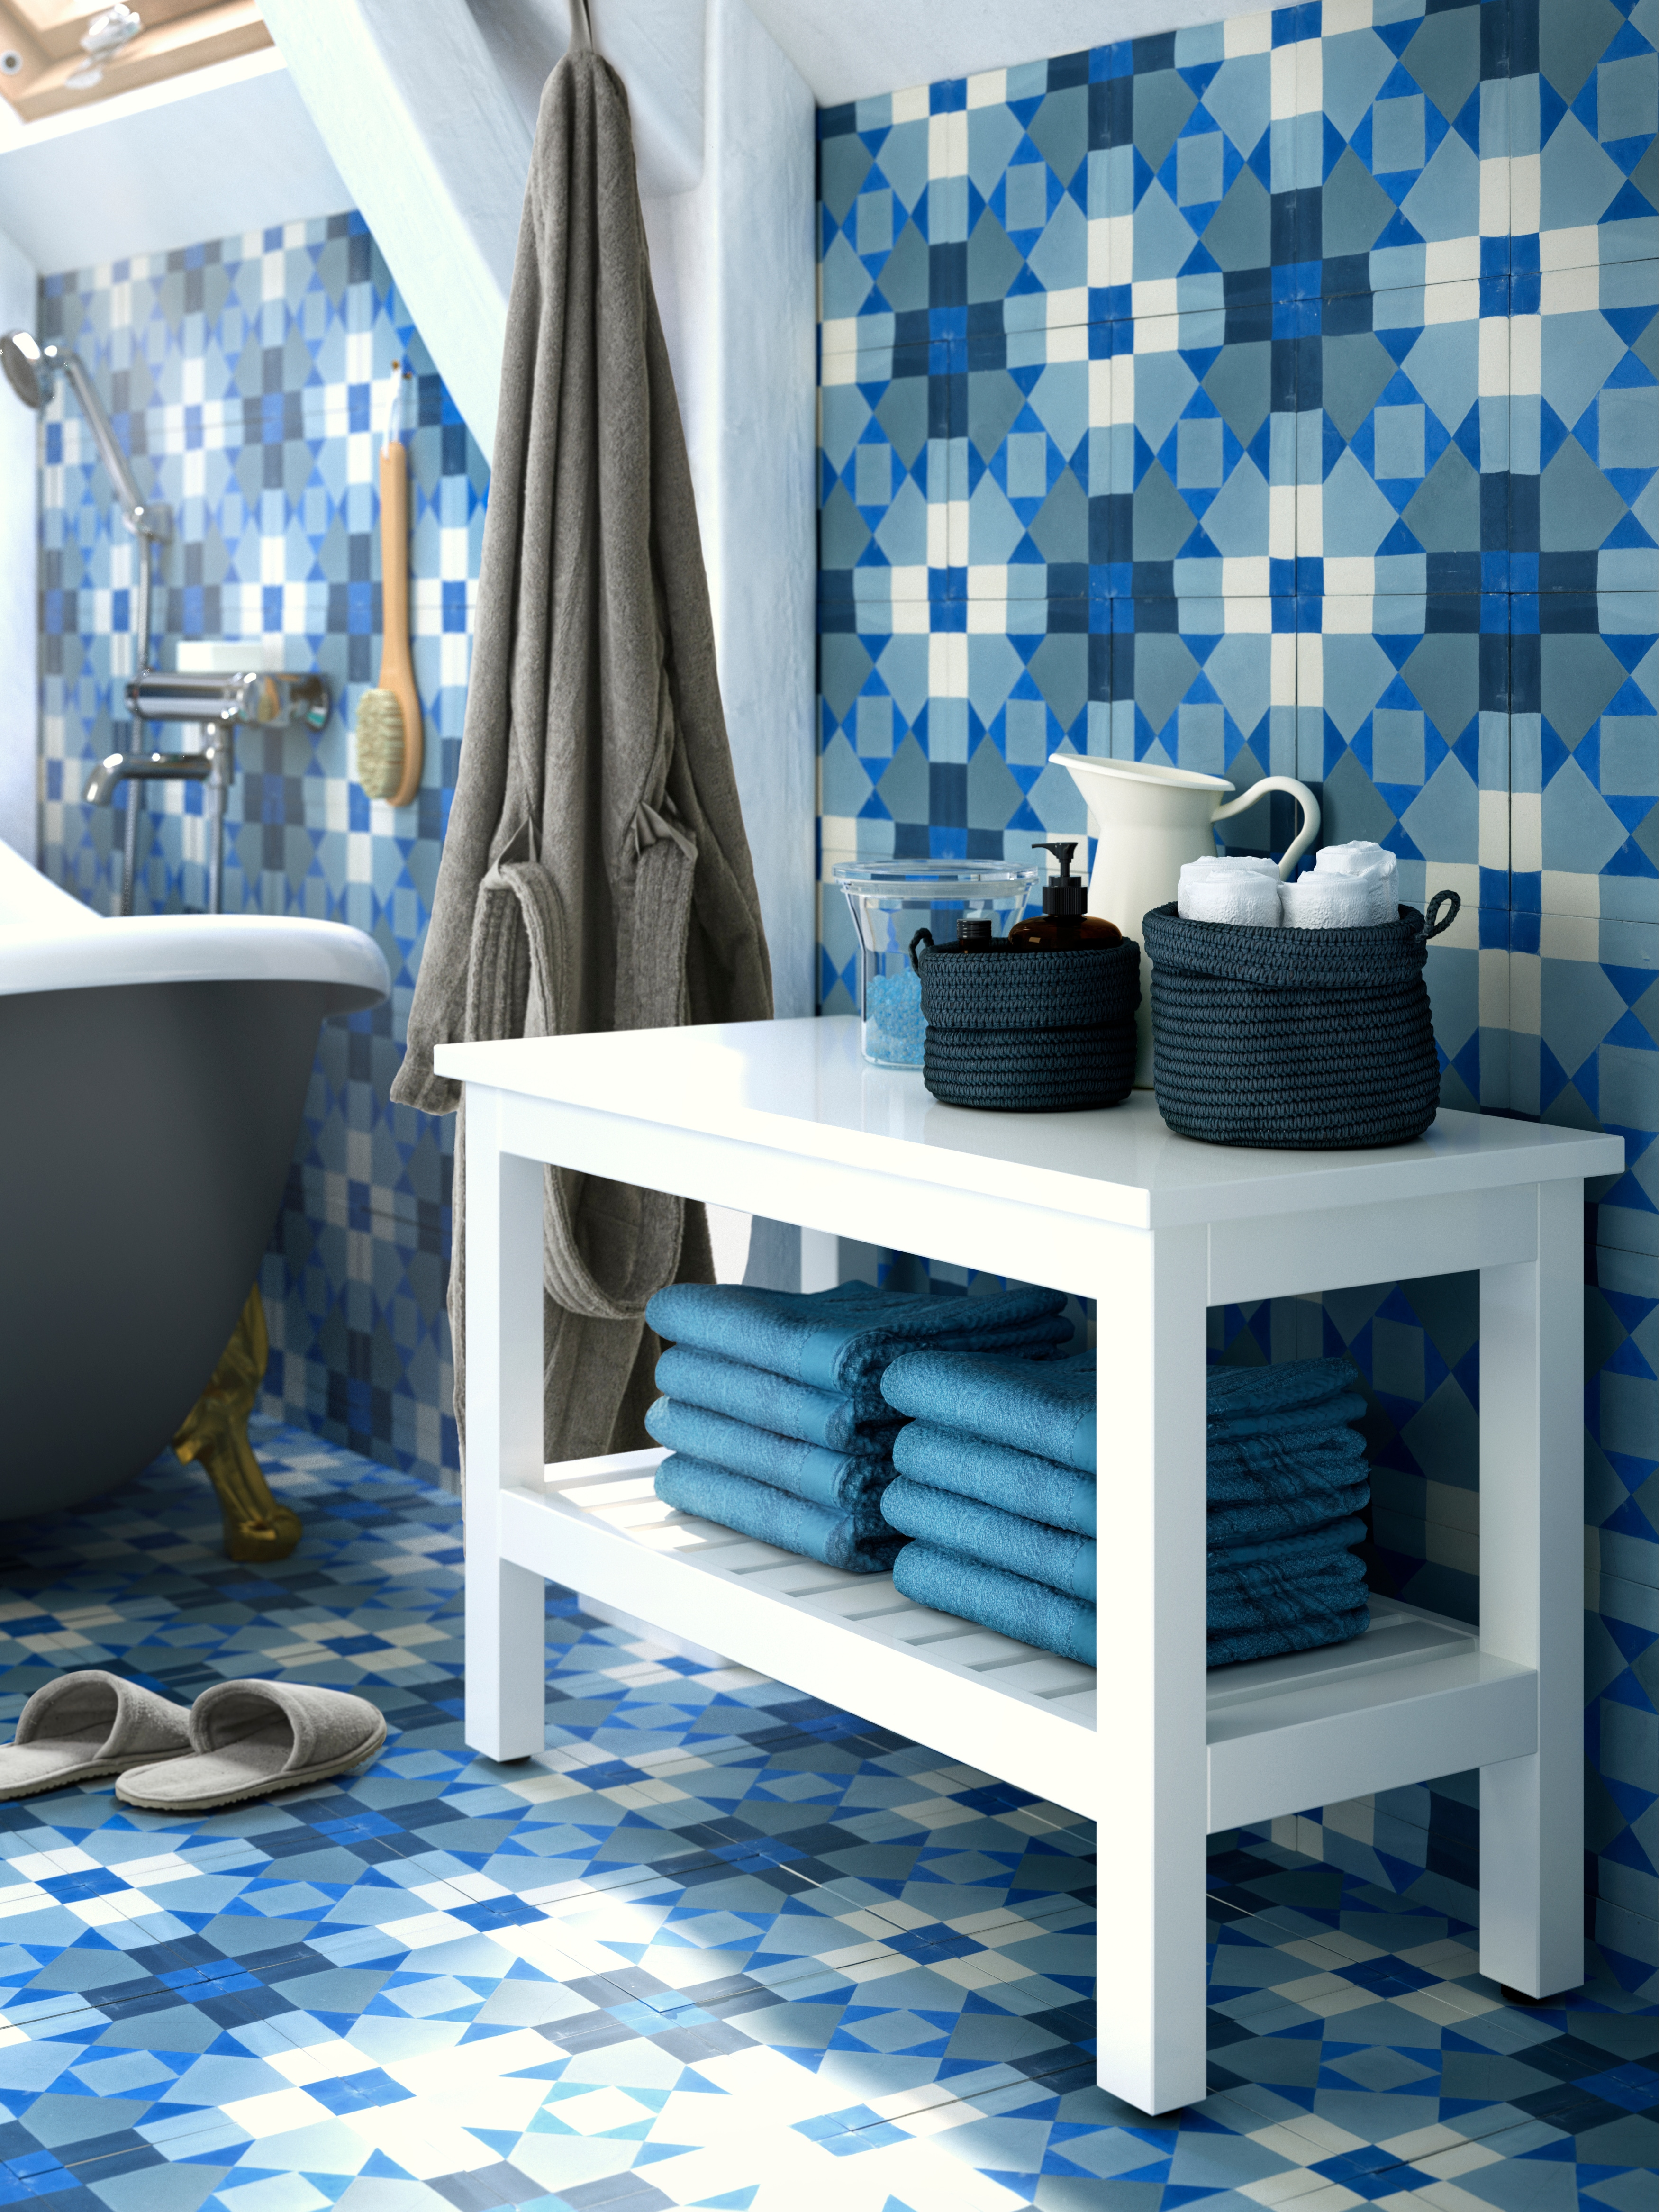 A tiled bathroom with a white HEMNES bench that has folded blue towels on the bottom shelf and small woven baskets on top.